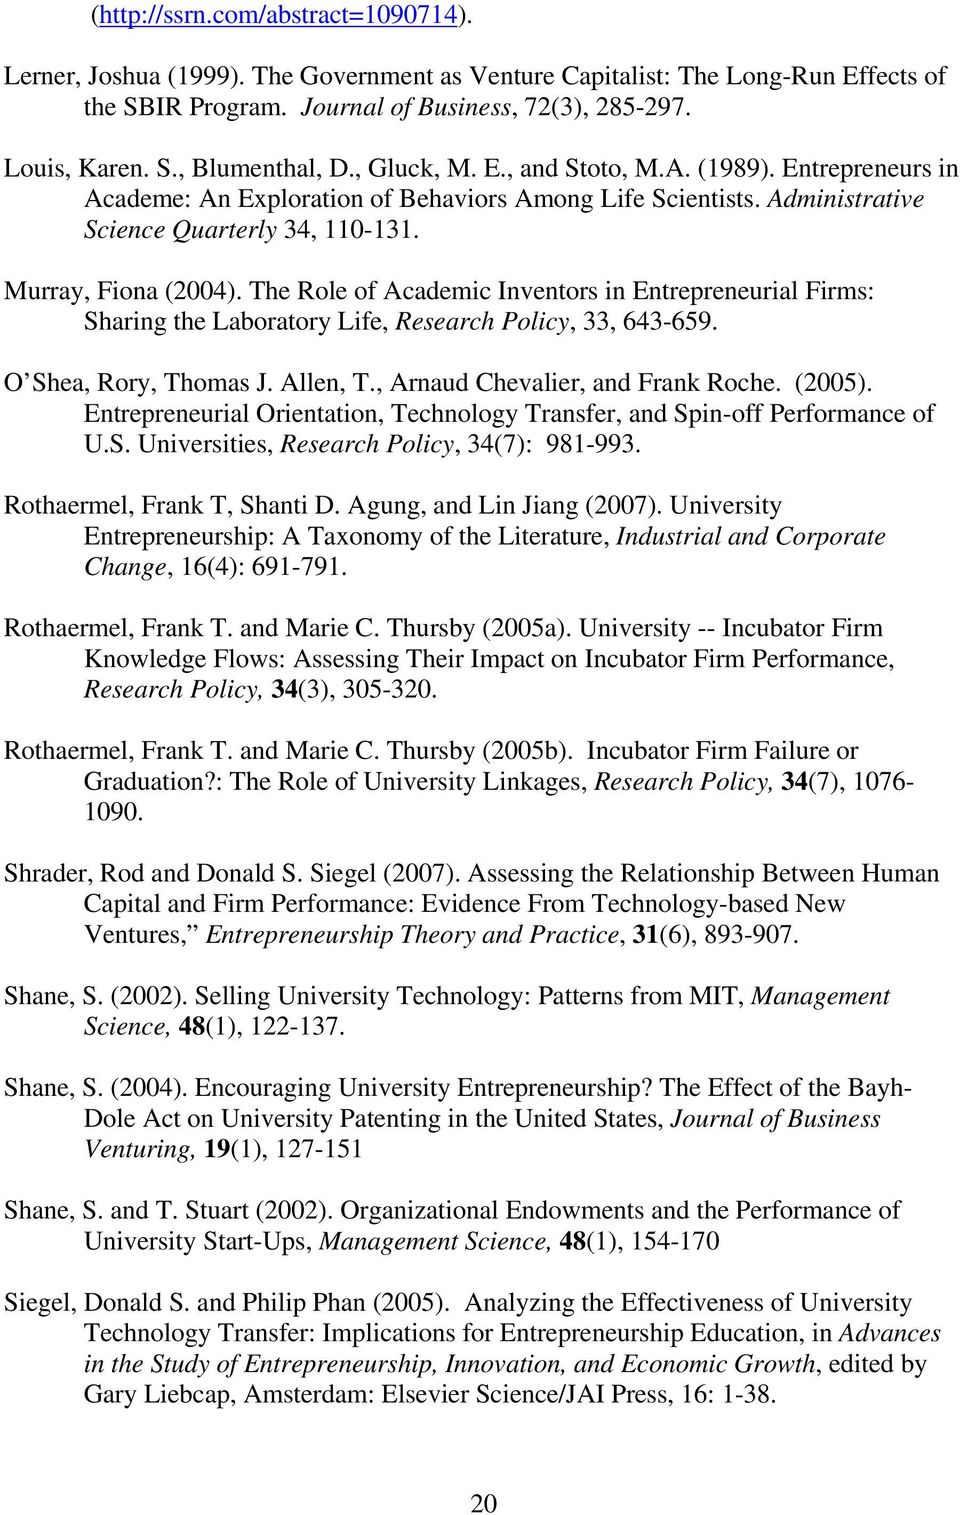 The Role of Academic Inventors in Entrepreneurial Firms: Sharing the Laboratory Life, Research Policy, 33, 643-659. O Shea, Rory, Thomas J. Allen, T., Arnaud Chevalier, and Frank Roche. (2005).